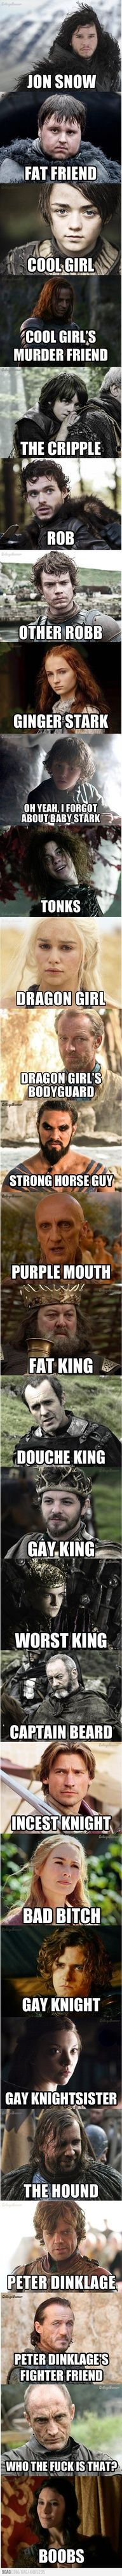 Concise Game of Thrones characters